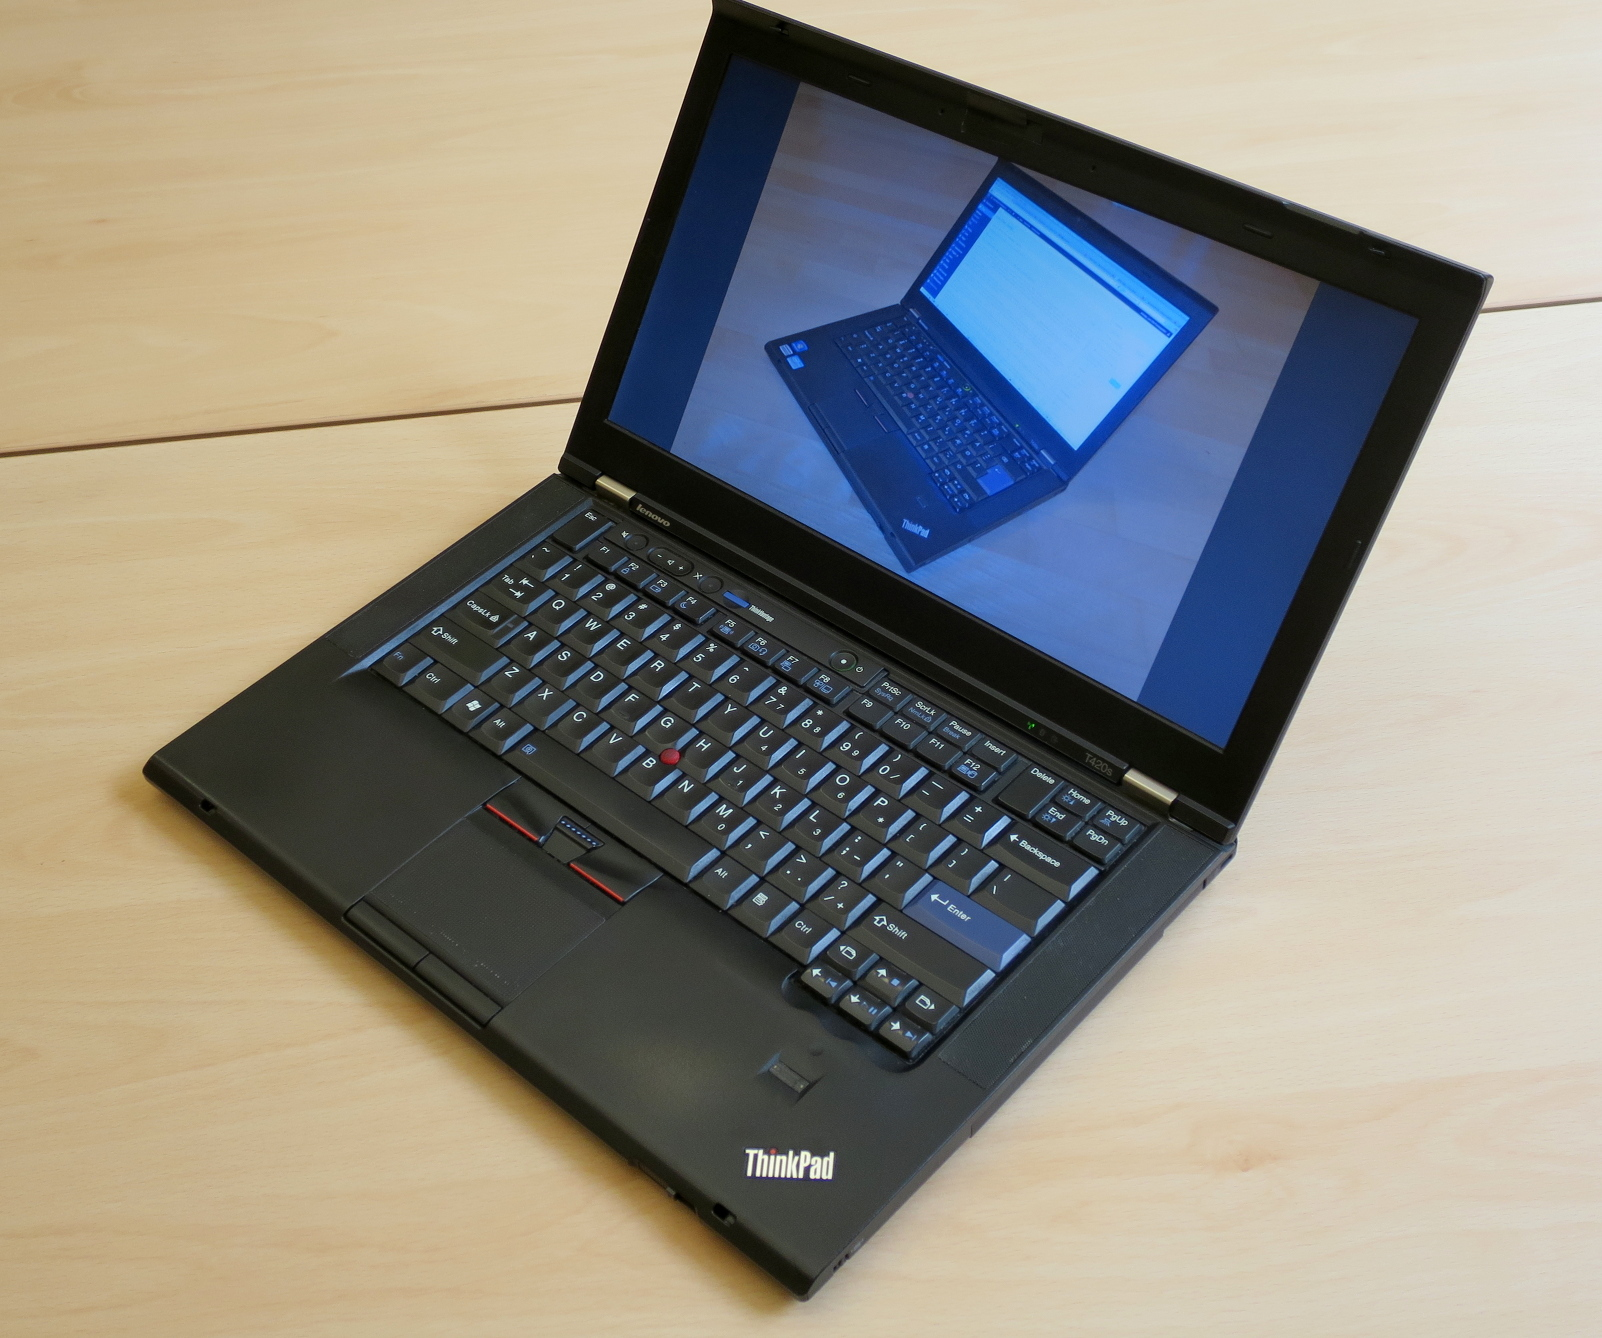 Lars' Electric Endeavors - Linux Mint 18 on Lenovo T420s